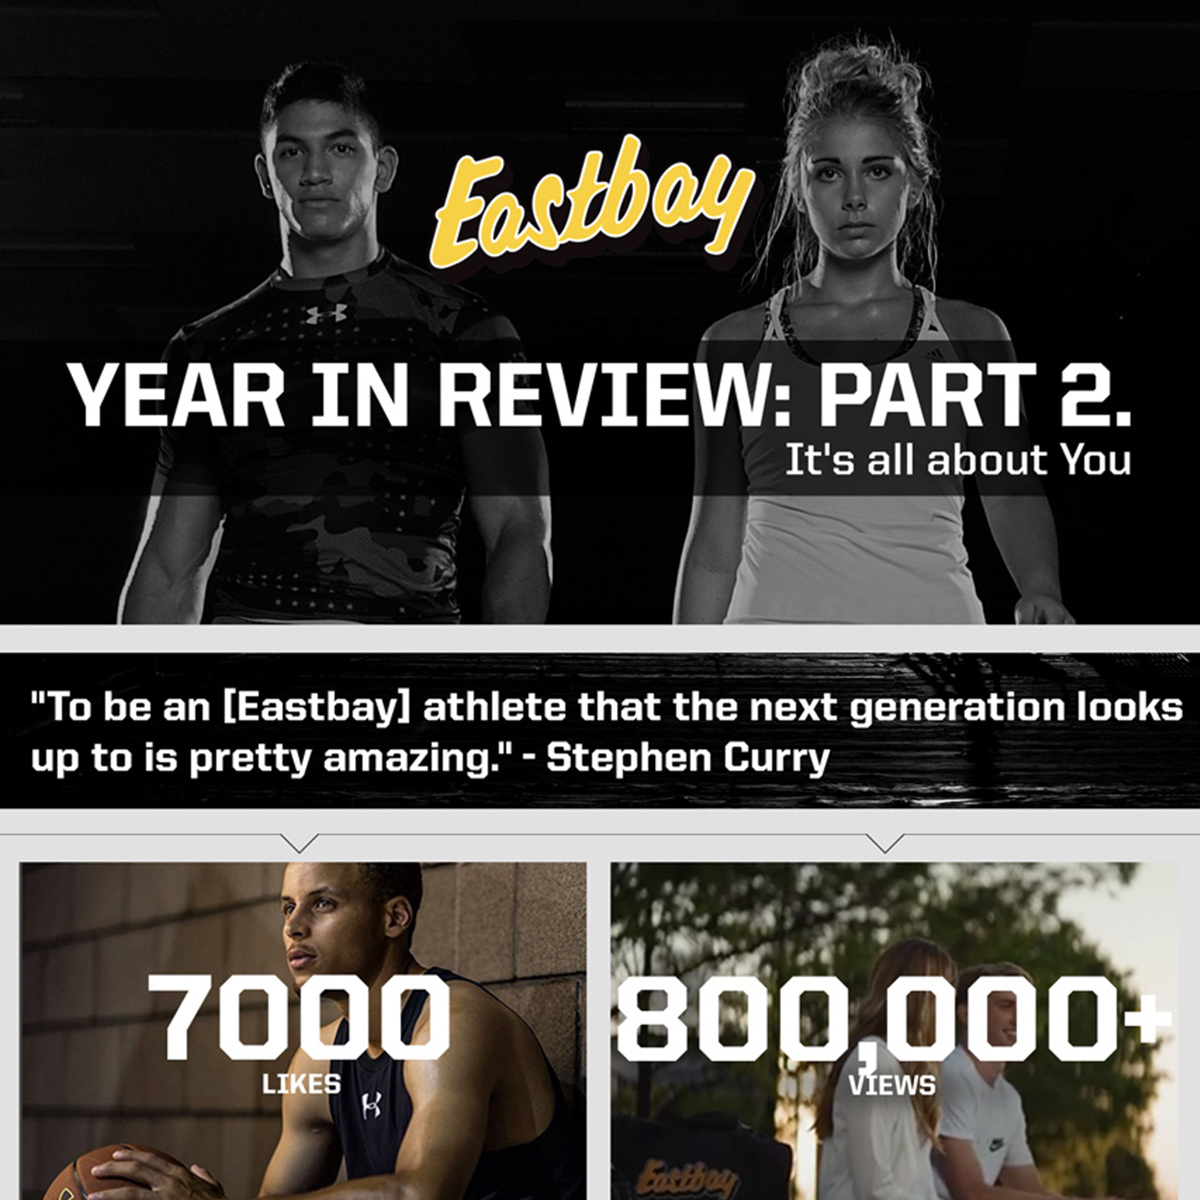 Year in Review: Part 2.  It's all about You